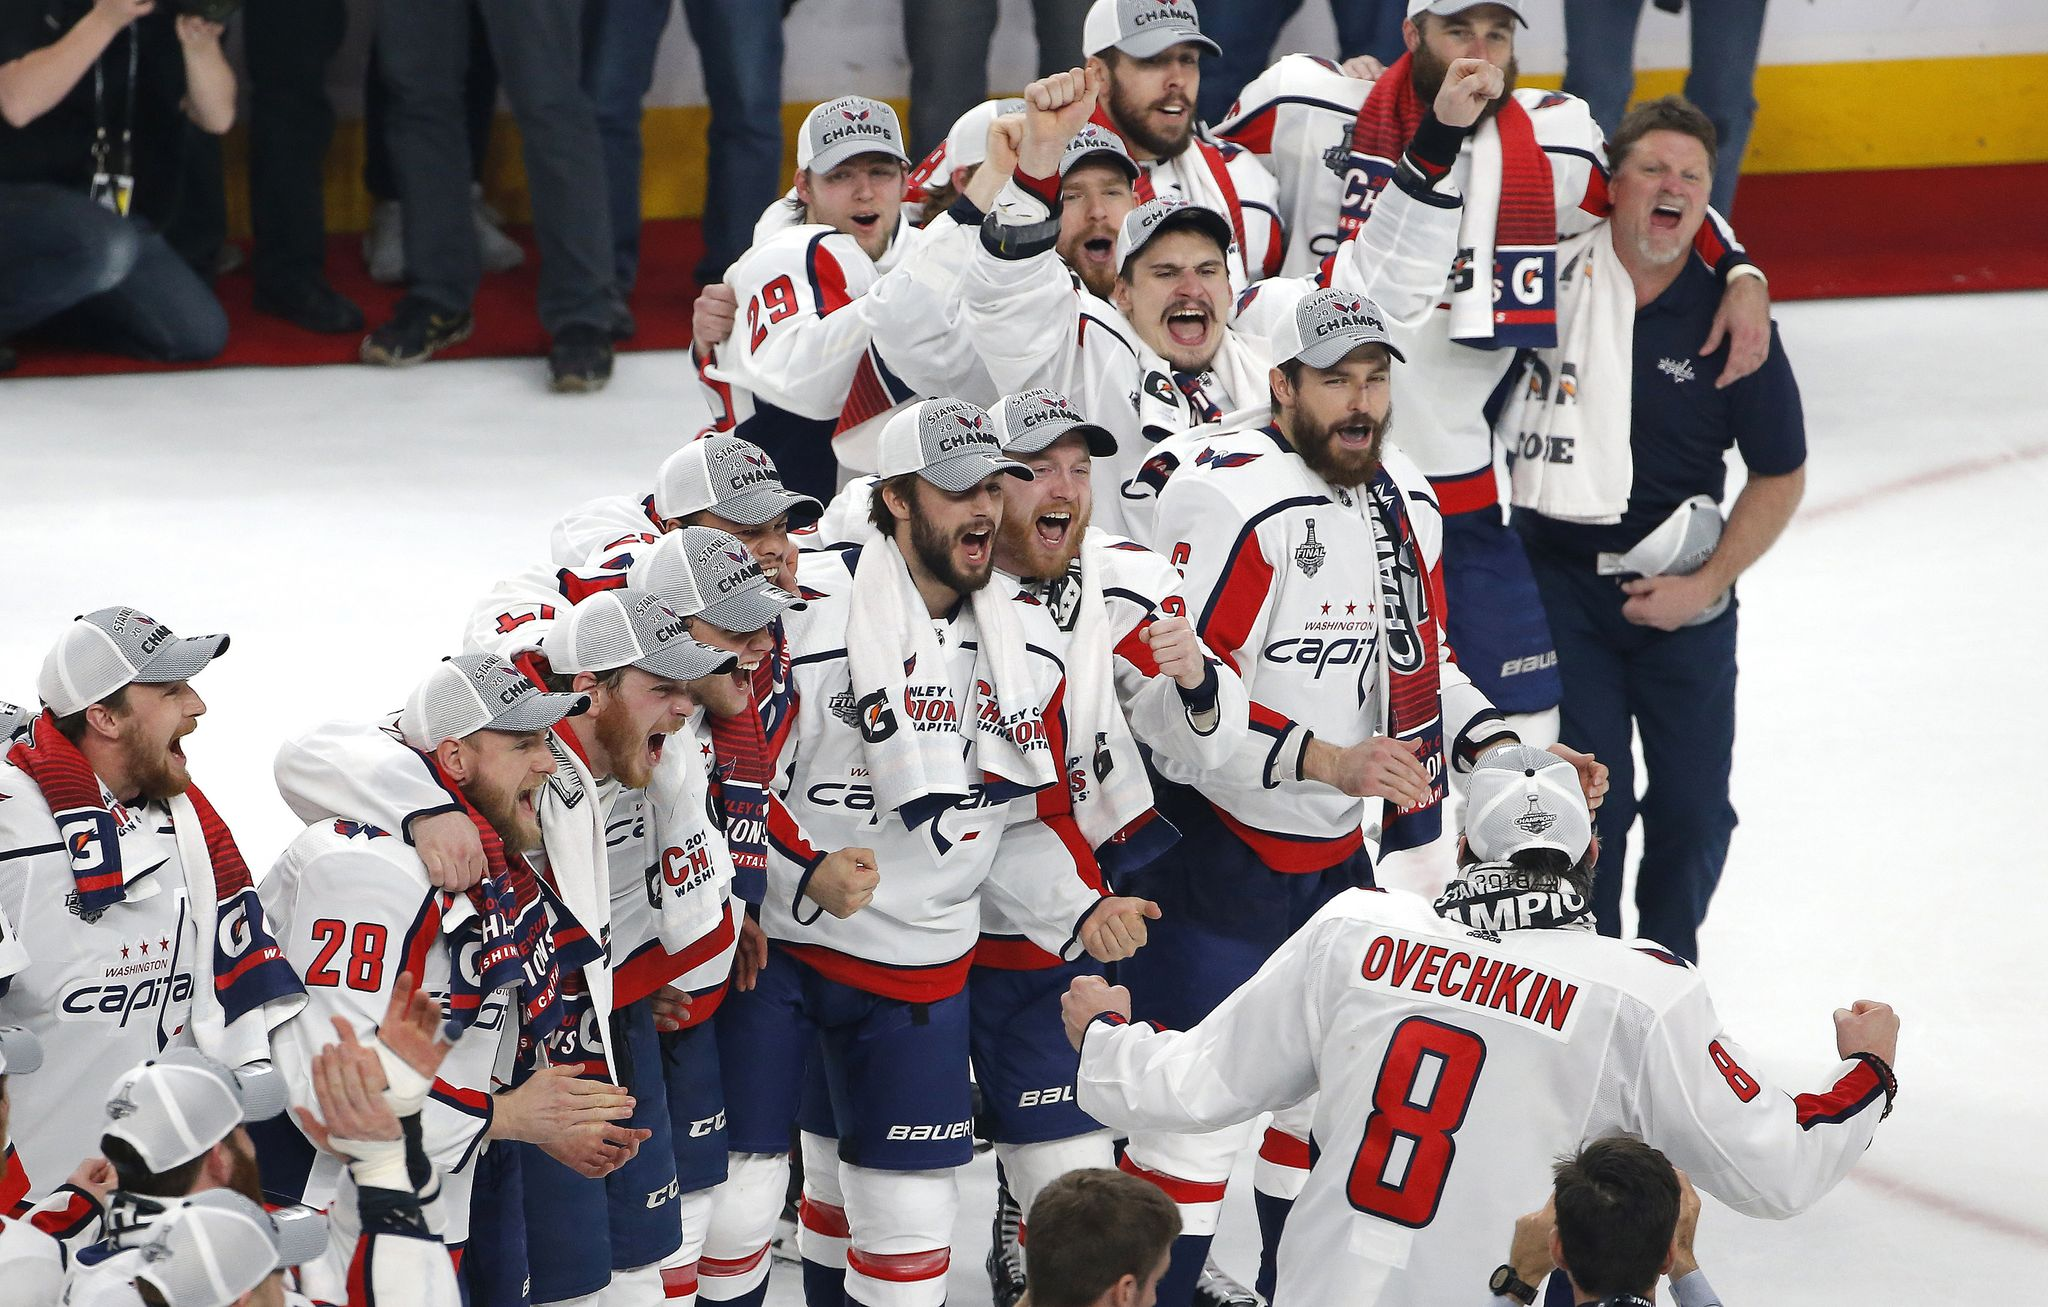 Stanley_cup_capitals_golden_knights_hockey_54369.jpg-986c5_s2048x1307